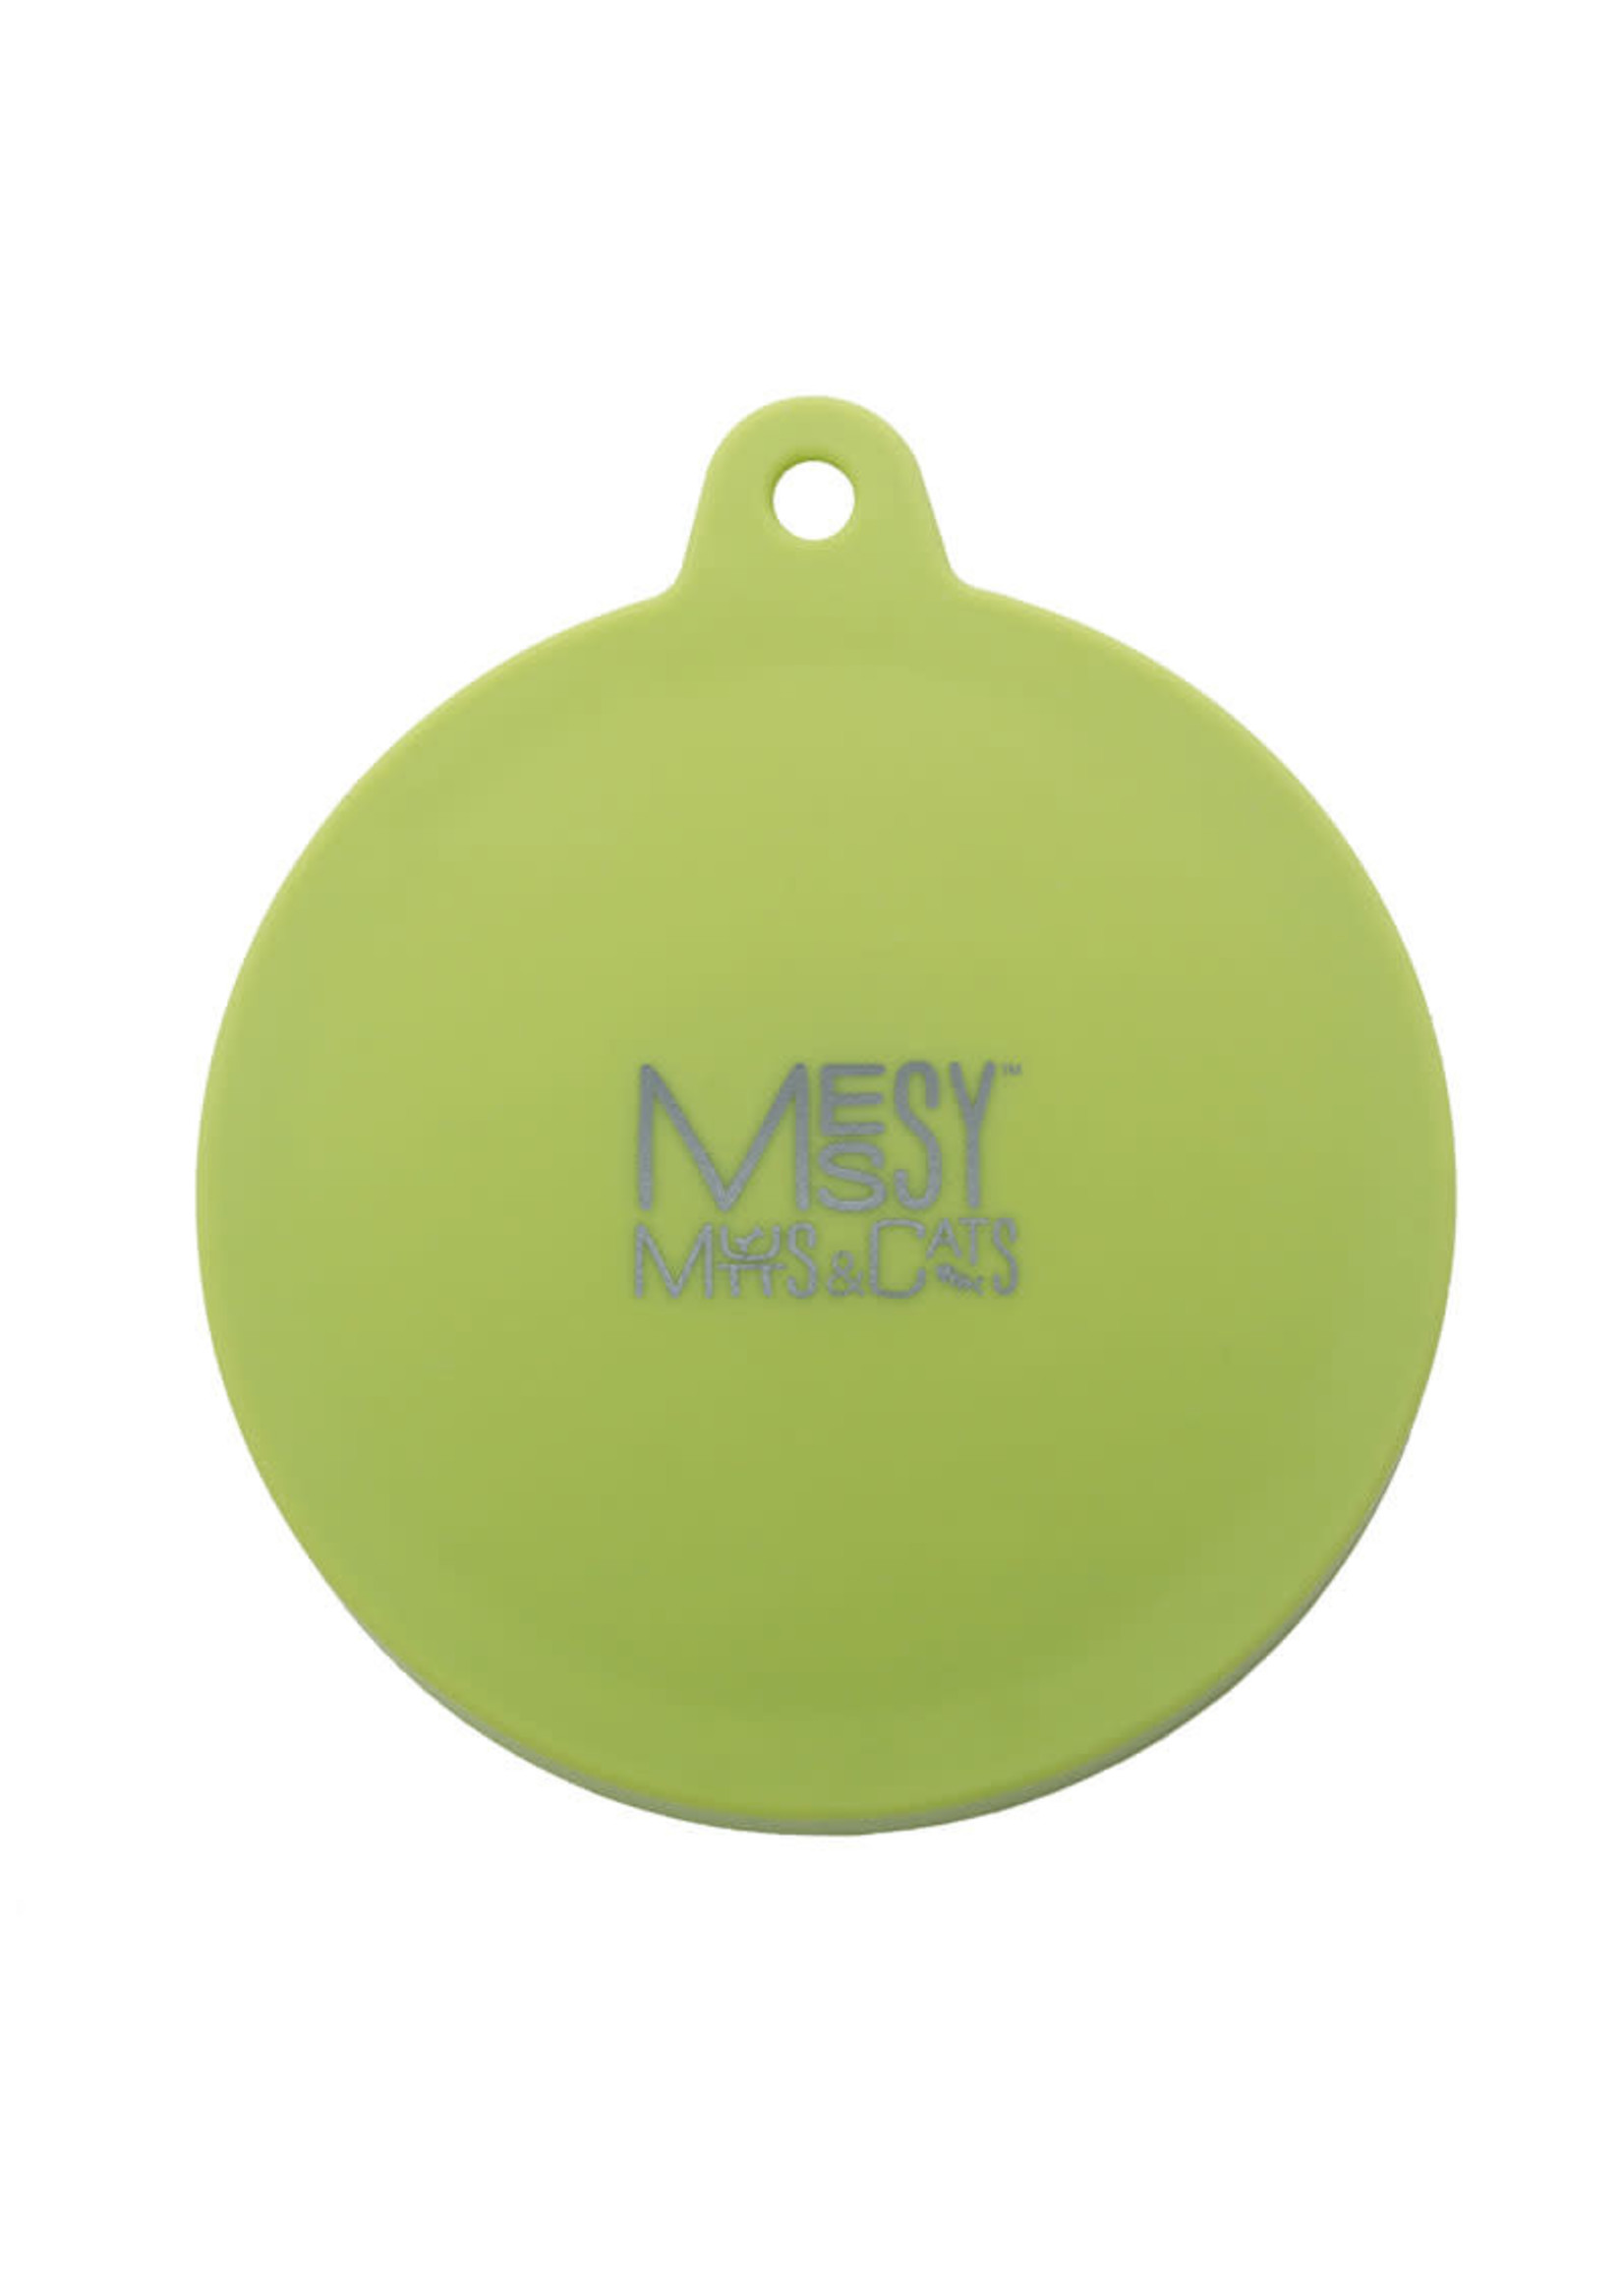 Messy Mutts MESSY MUTTS couvercle pour conserve vert